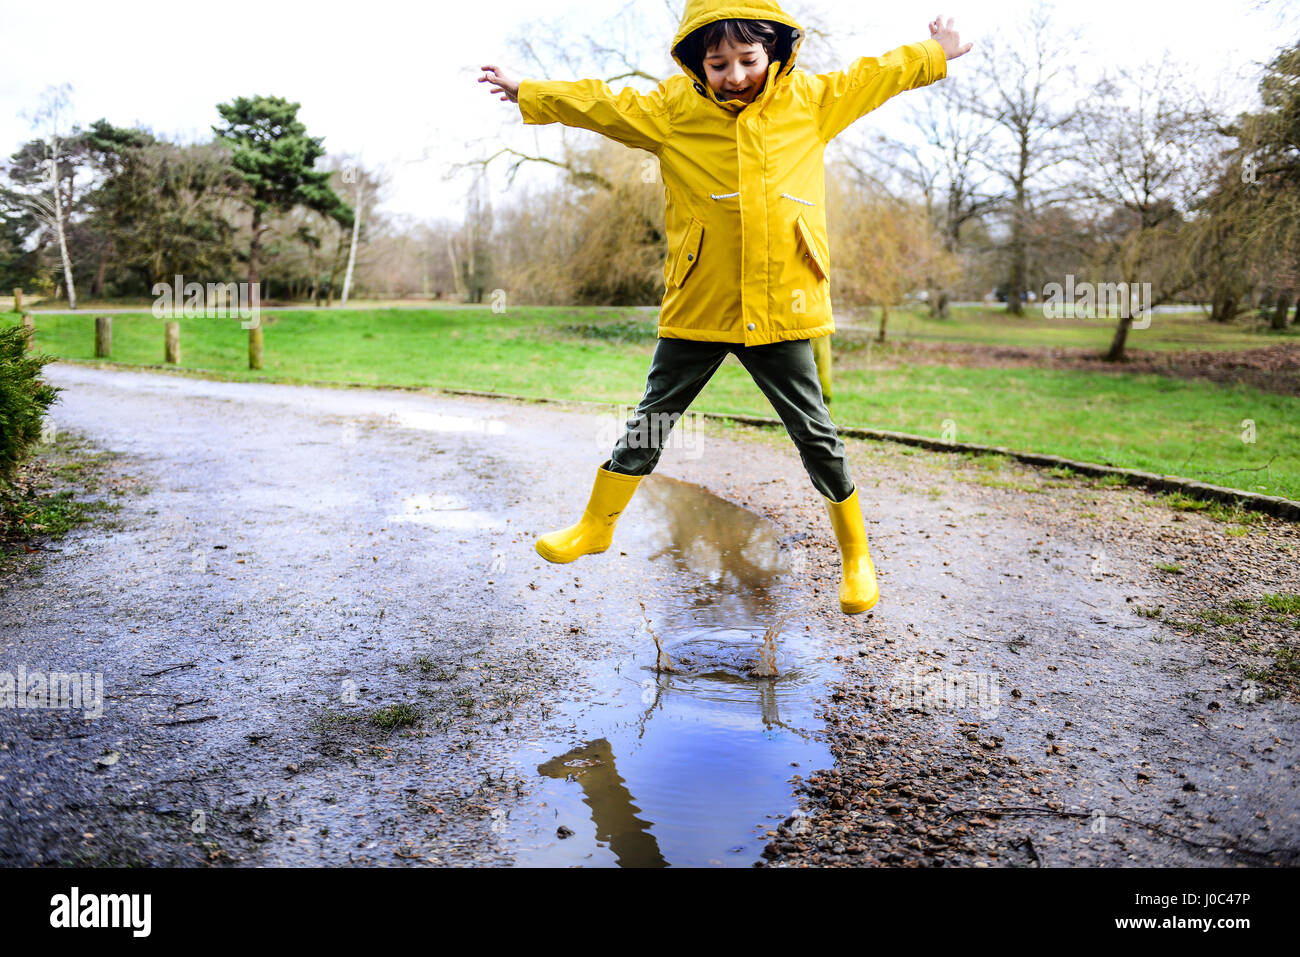 Boy in yellow anorak jumping above puddle in park - Stock Image